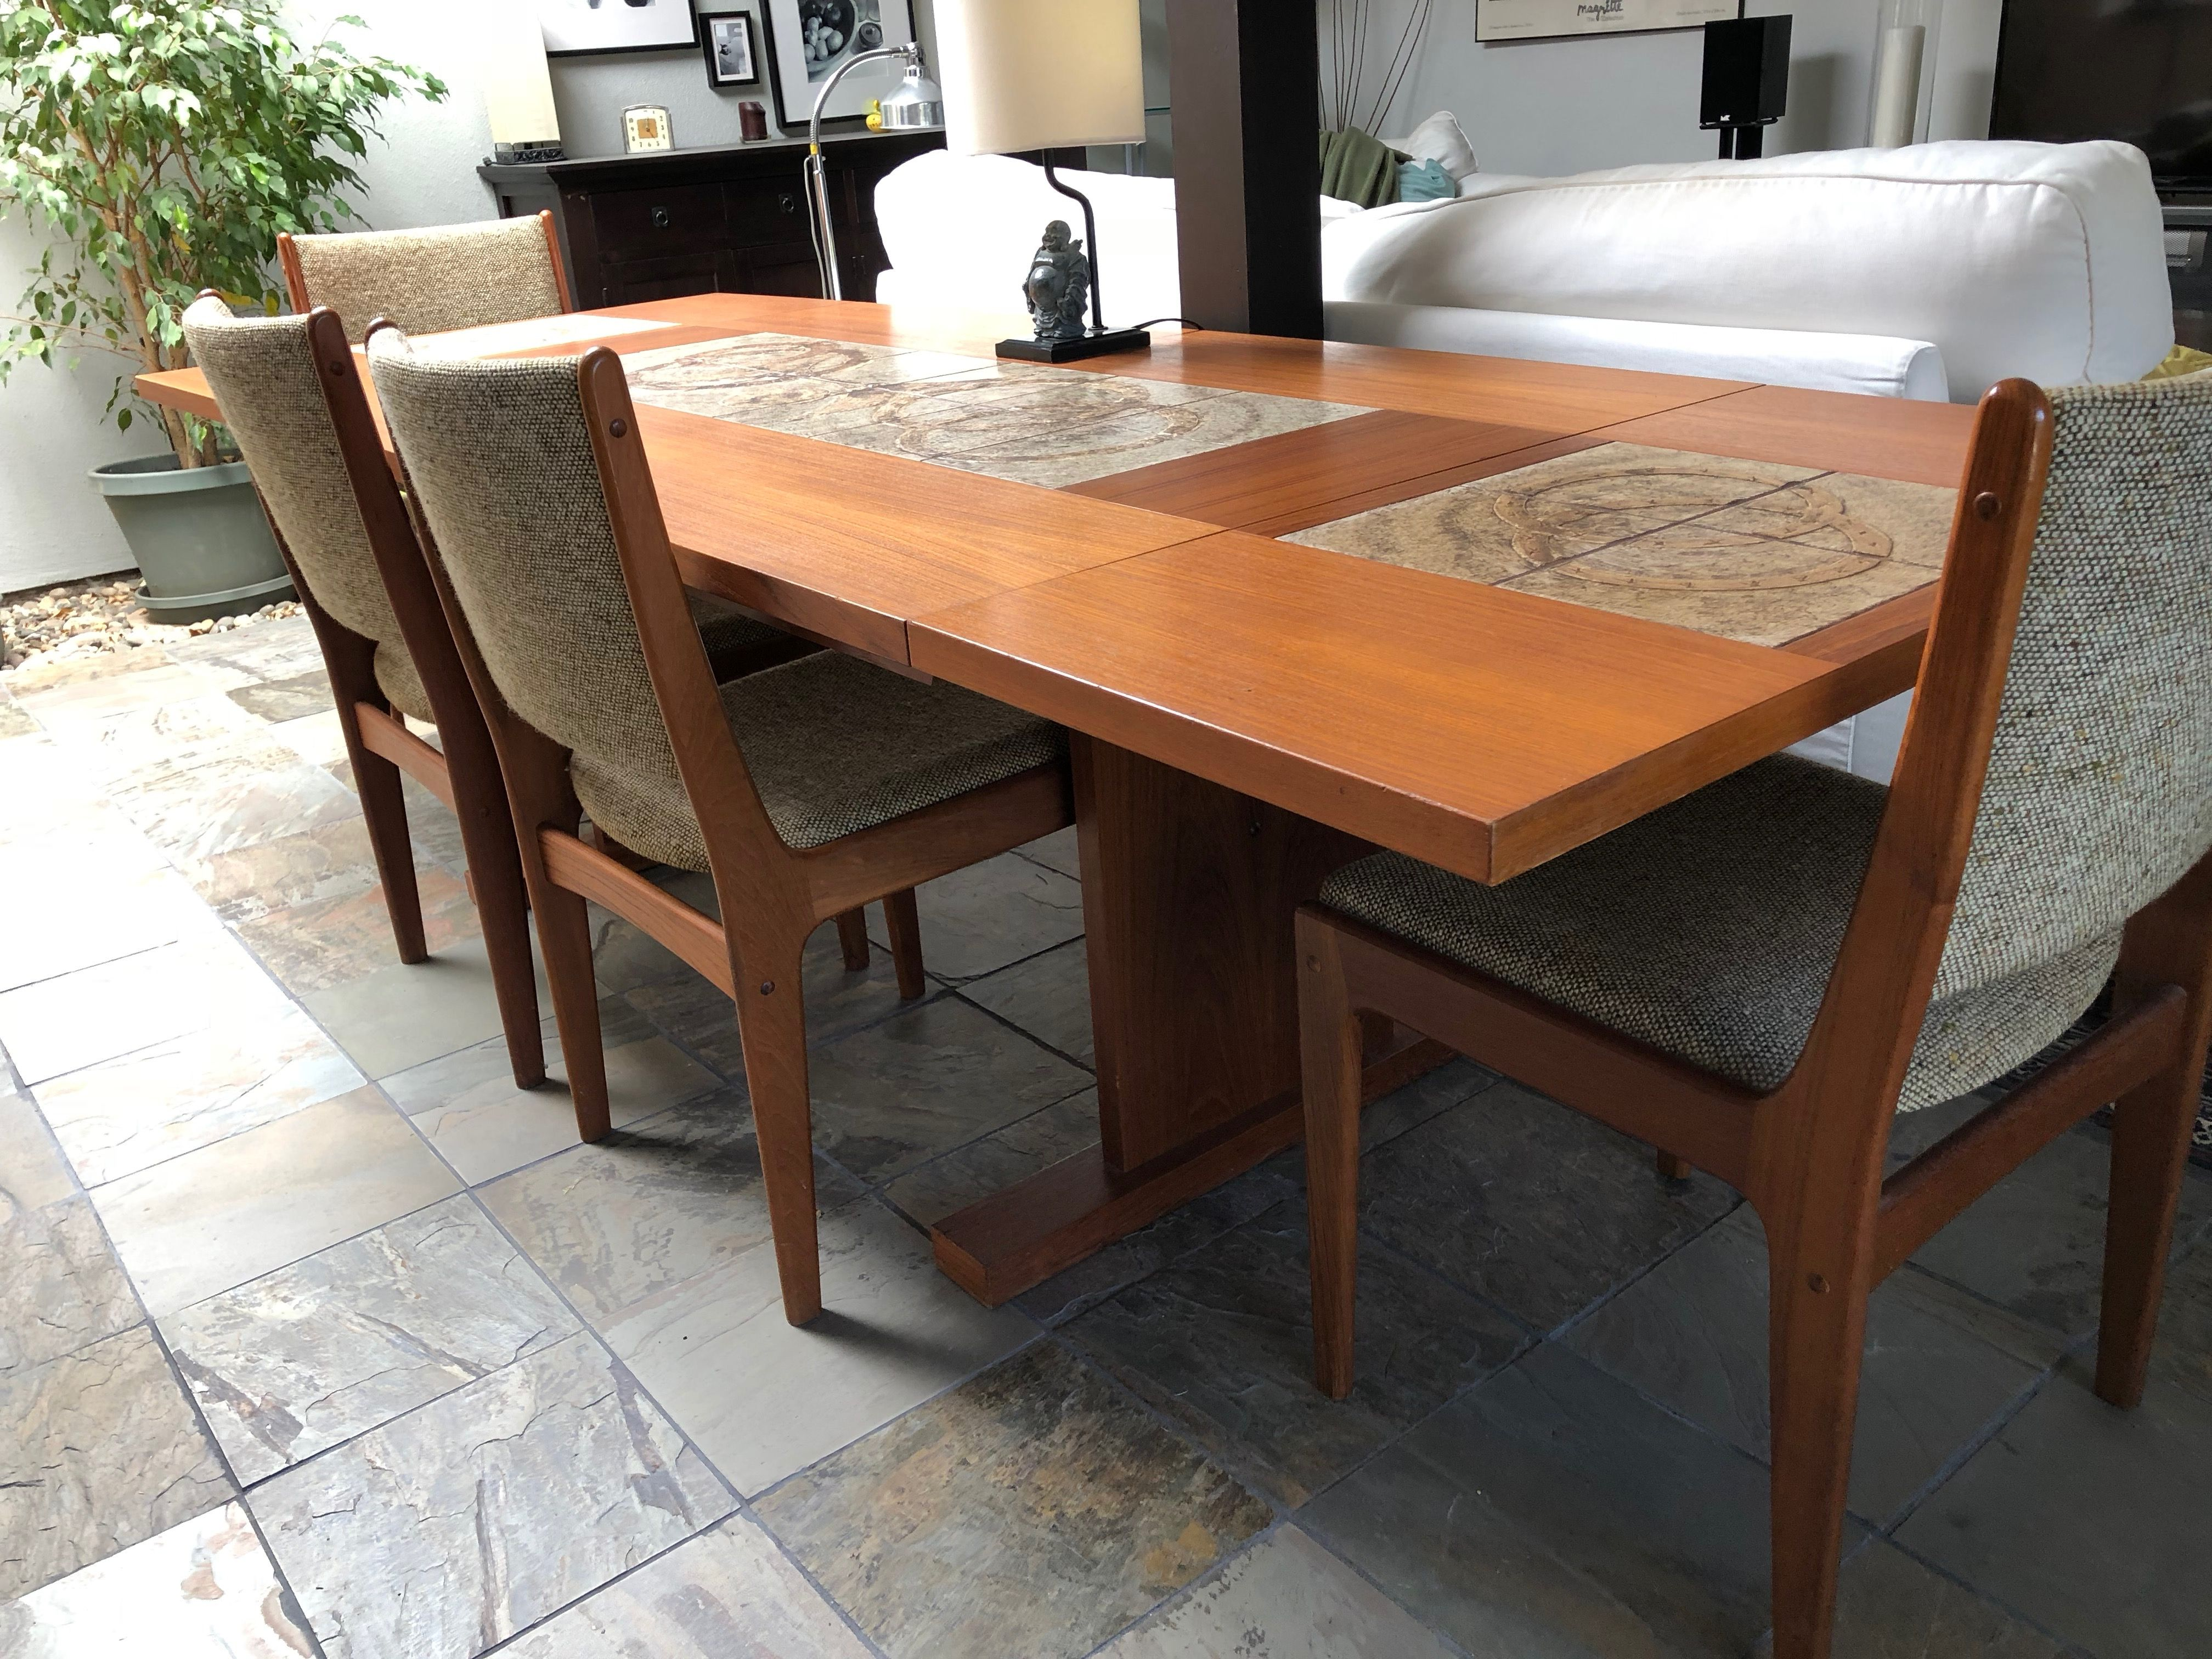 New (To Me) Dining Table Vintage Scandinavian Modern